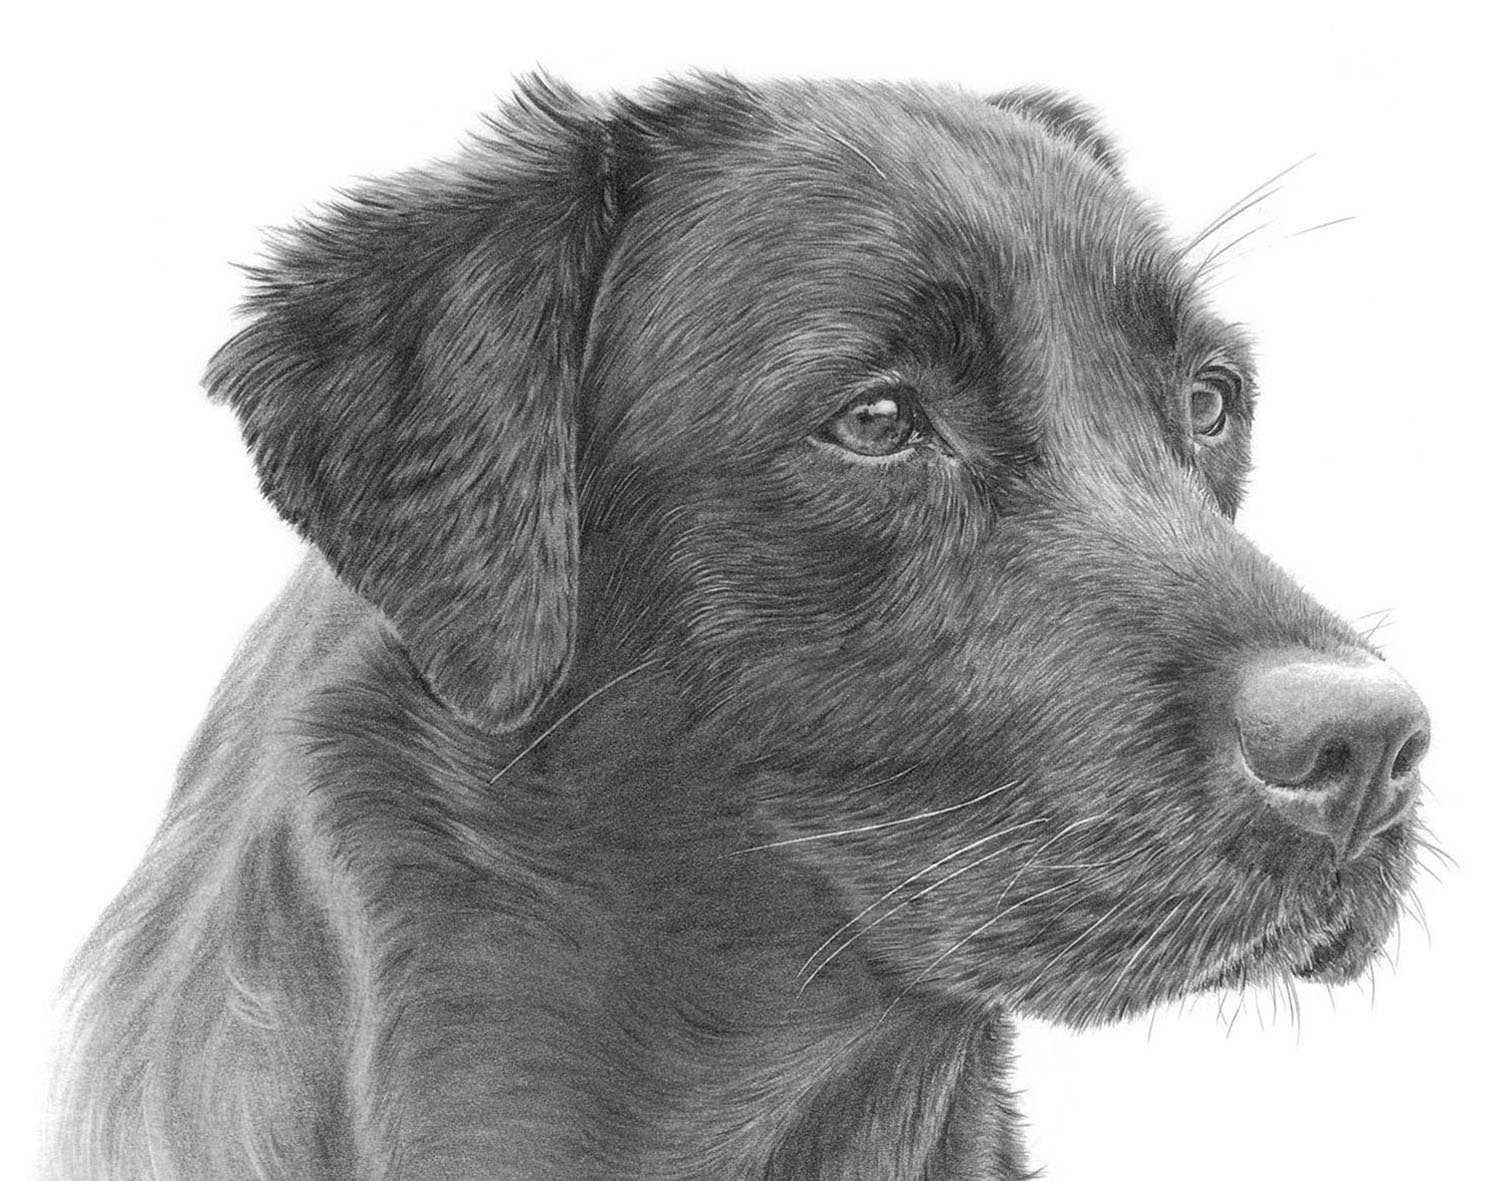 Dog Prints - Browse the collection of dog breeds, from Border Collies and Border Terriers, to Yorkies and Westies